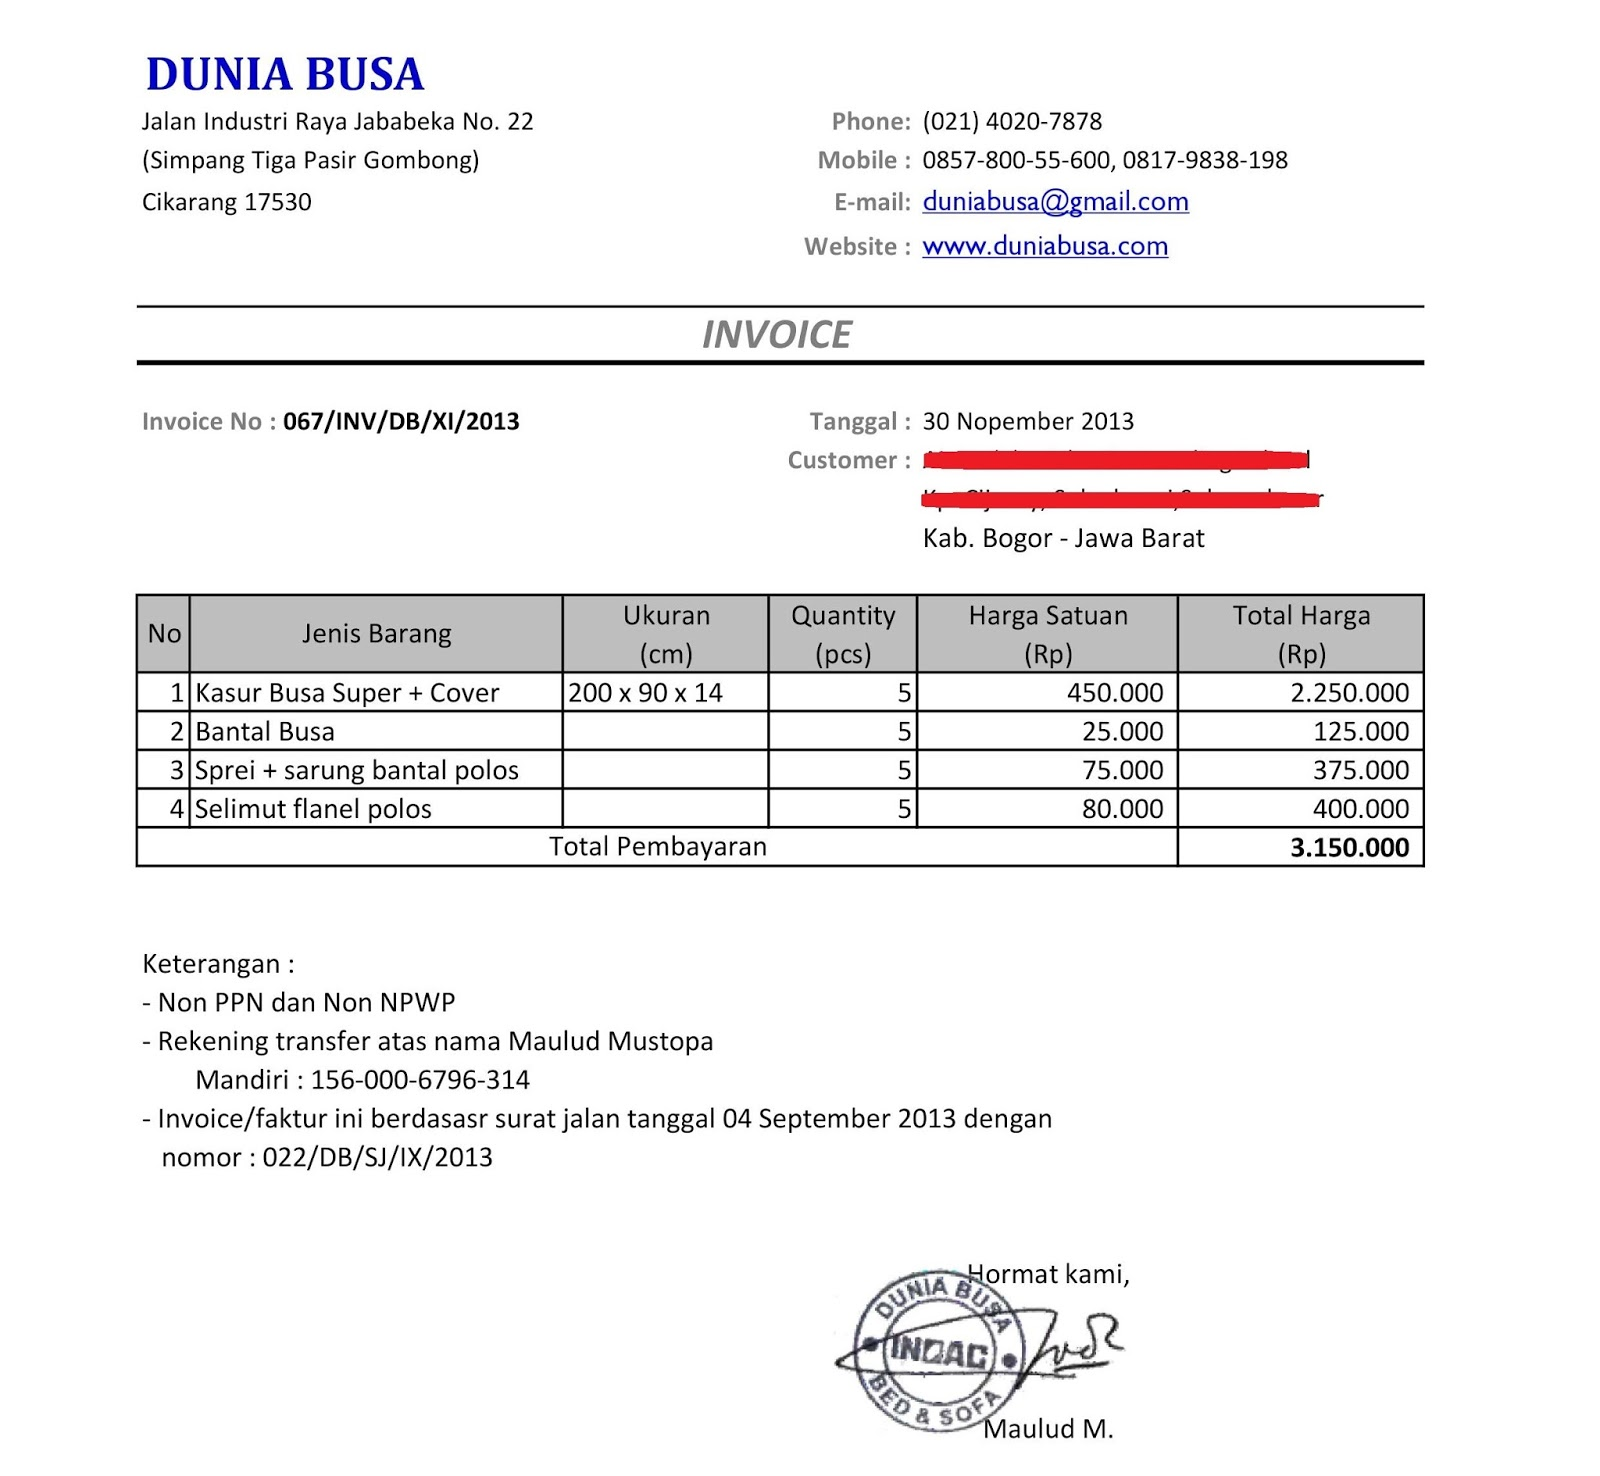 Hius  Pleasant Free Invoice Online  Create Invoice Online  Invoice Template  With Inspiring Contoh Format Invoice Atau Surat Tagihan  Brankas Arsip  Free Invoice Online With Delightful Type Of Invoices Also Invoice And Stock Control Software In Addition Sole Trader Invoice Template And Google Drive Templates Invoice As Well As Invoice Letterhead Additionally On Receipt Of Invoice From Sklepco With Hius  Inspiring Free Invoice Online  Create Invoice Online  Invoice Template  With Delightful Contoh Format Invoice Atau Surat Tagihan  Brankas Arsip  Free Invoice Online And Pleasant Type Of Invoices Also Invoice And Stock Control Software In Addition Sole Trader Invoice Template From Sklepco